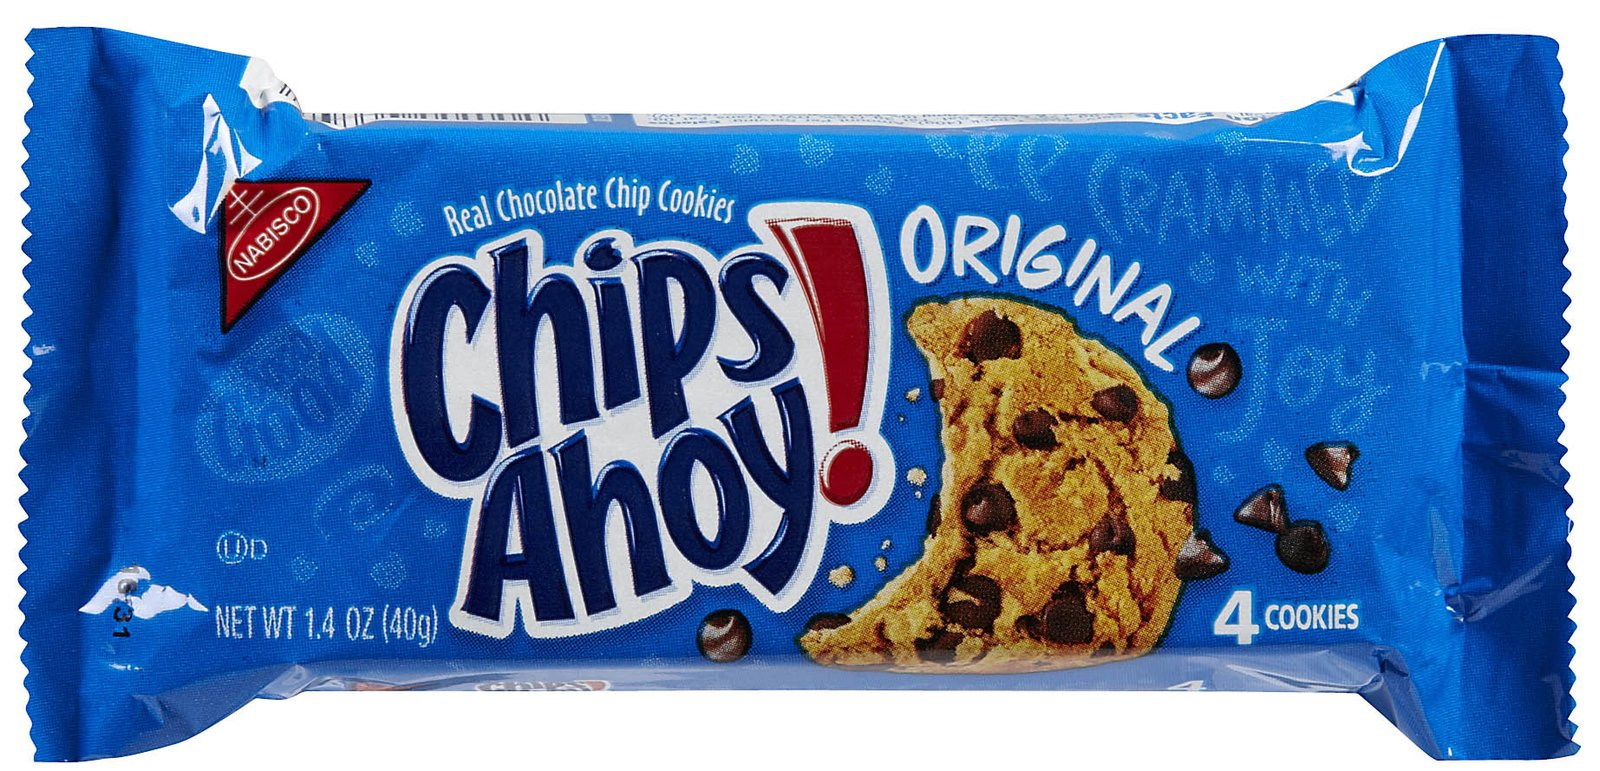 chips ahoy Nabisco chips ahoy original real chocolate chip cookies are the world's favorite chocolate chip cookies packed with chocolate chips baked into every bite.